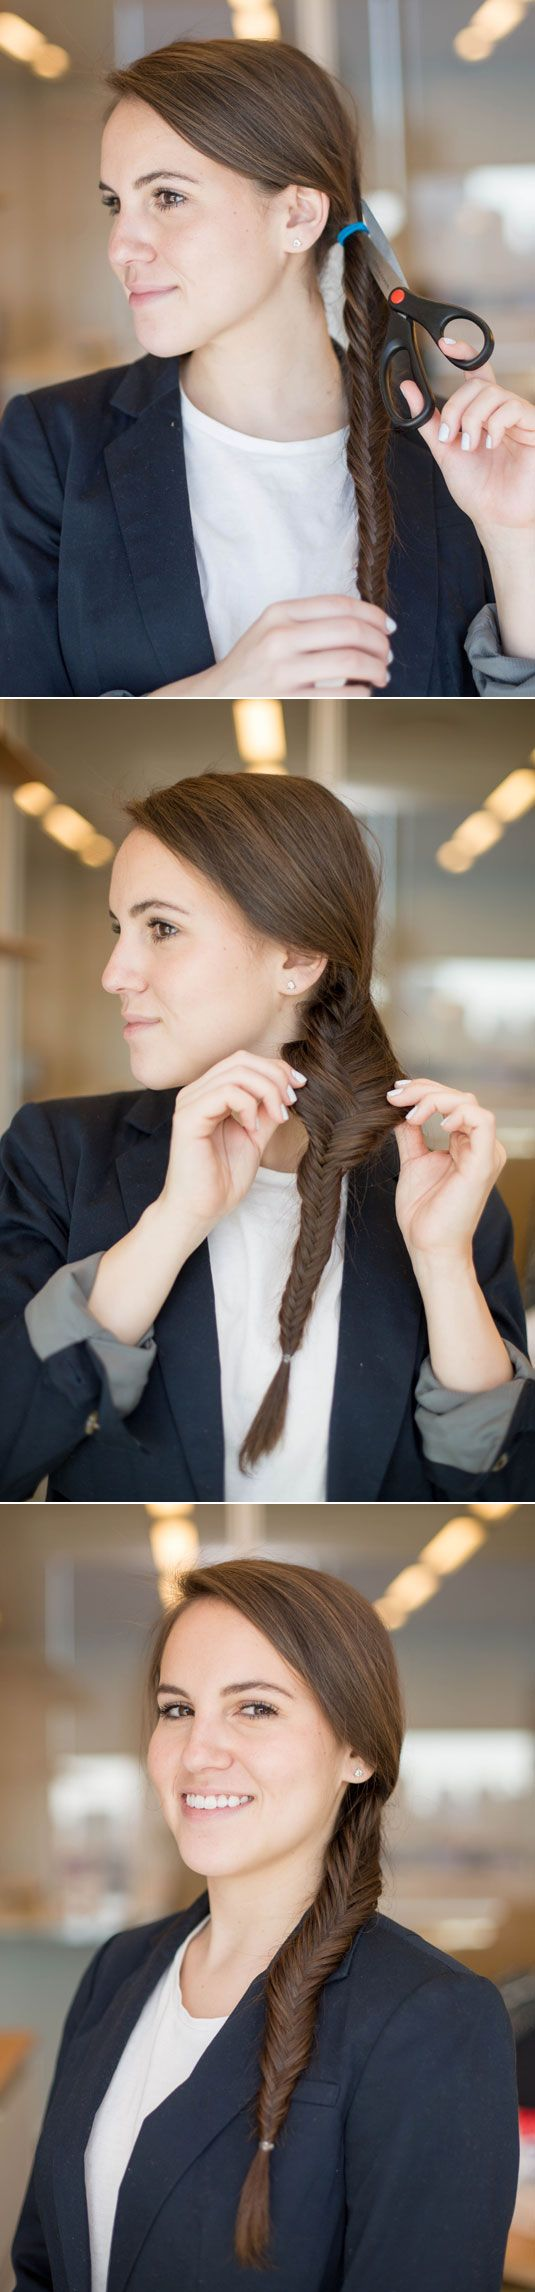 Easy Hairstyles - Fast and Simple Hair Styles - Good Housekeeping